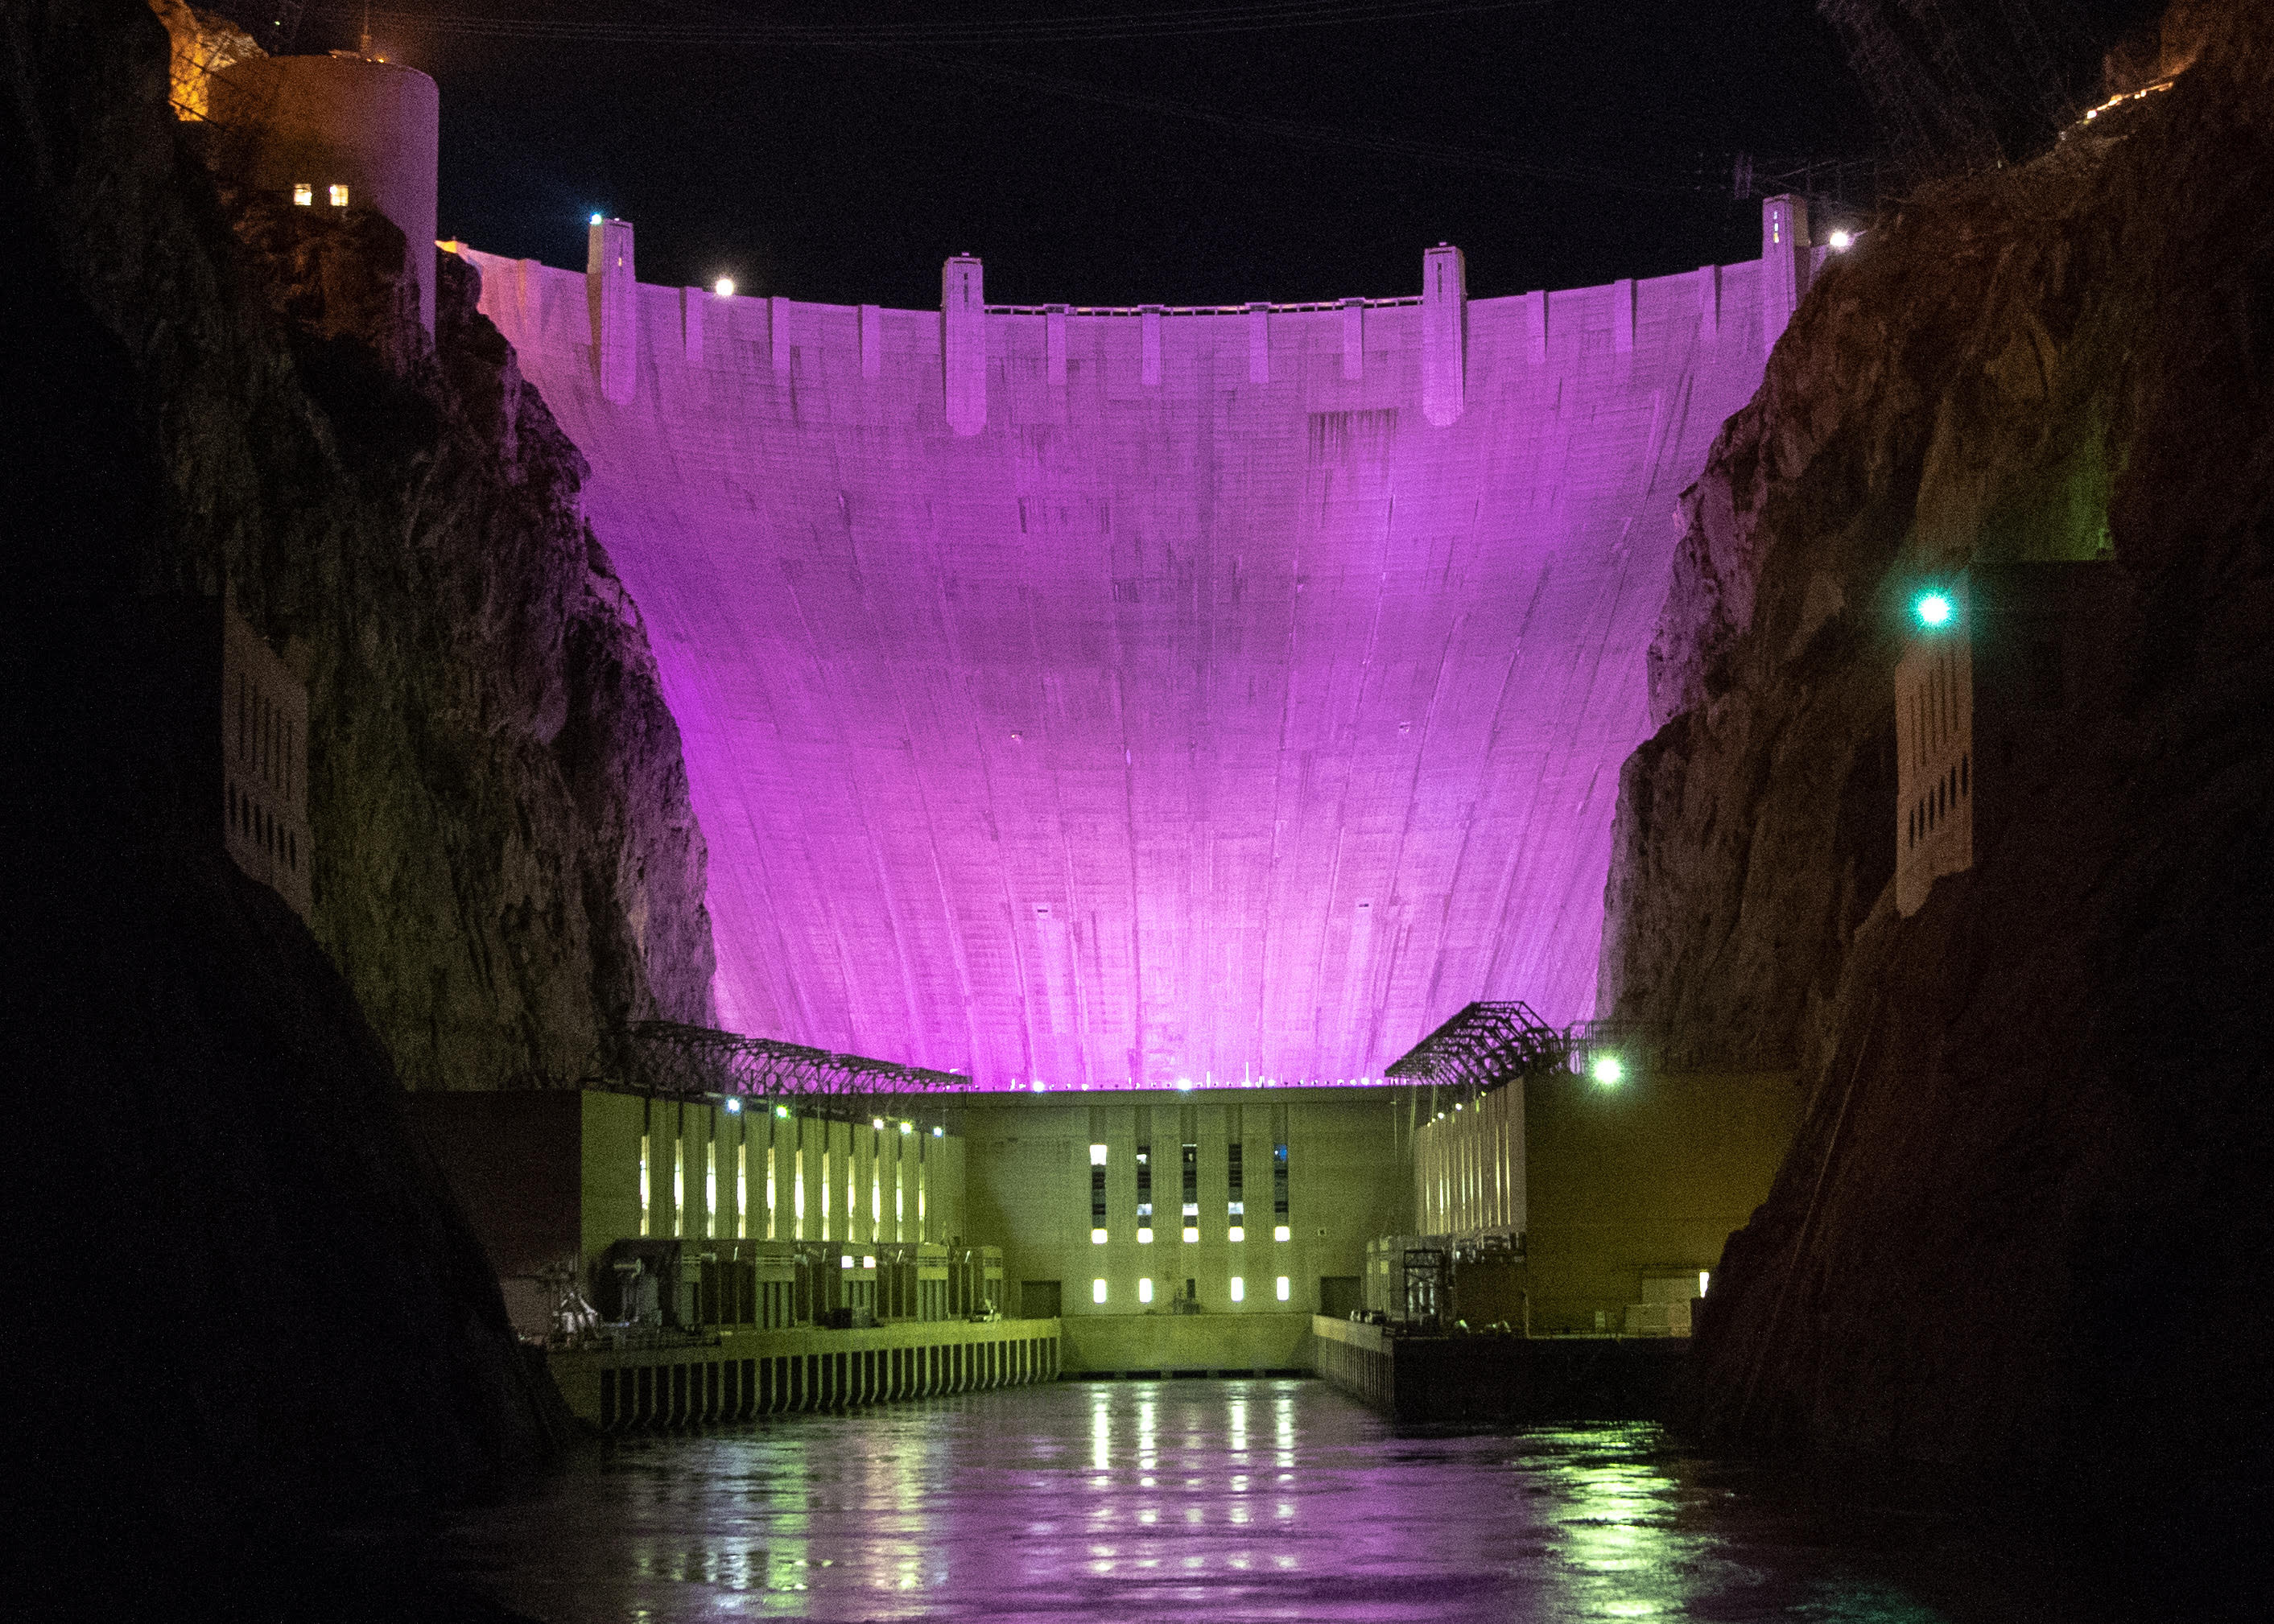 Bureau of Reclamation Photo: Hoover Dam was lit purple Monday night to raise awareness about the impacts of domestic violence.